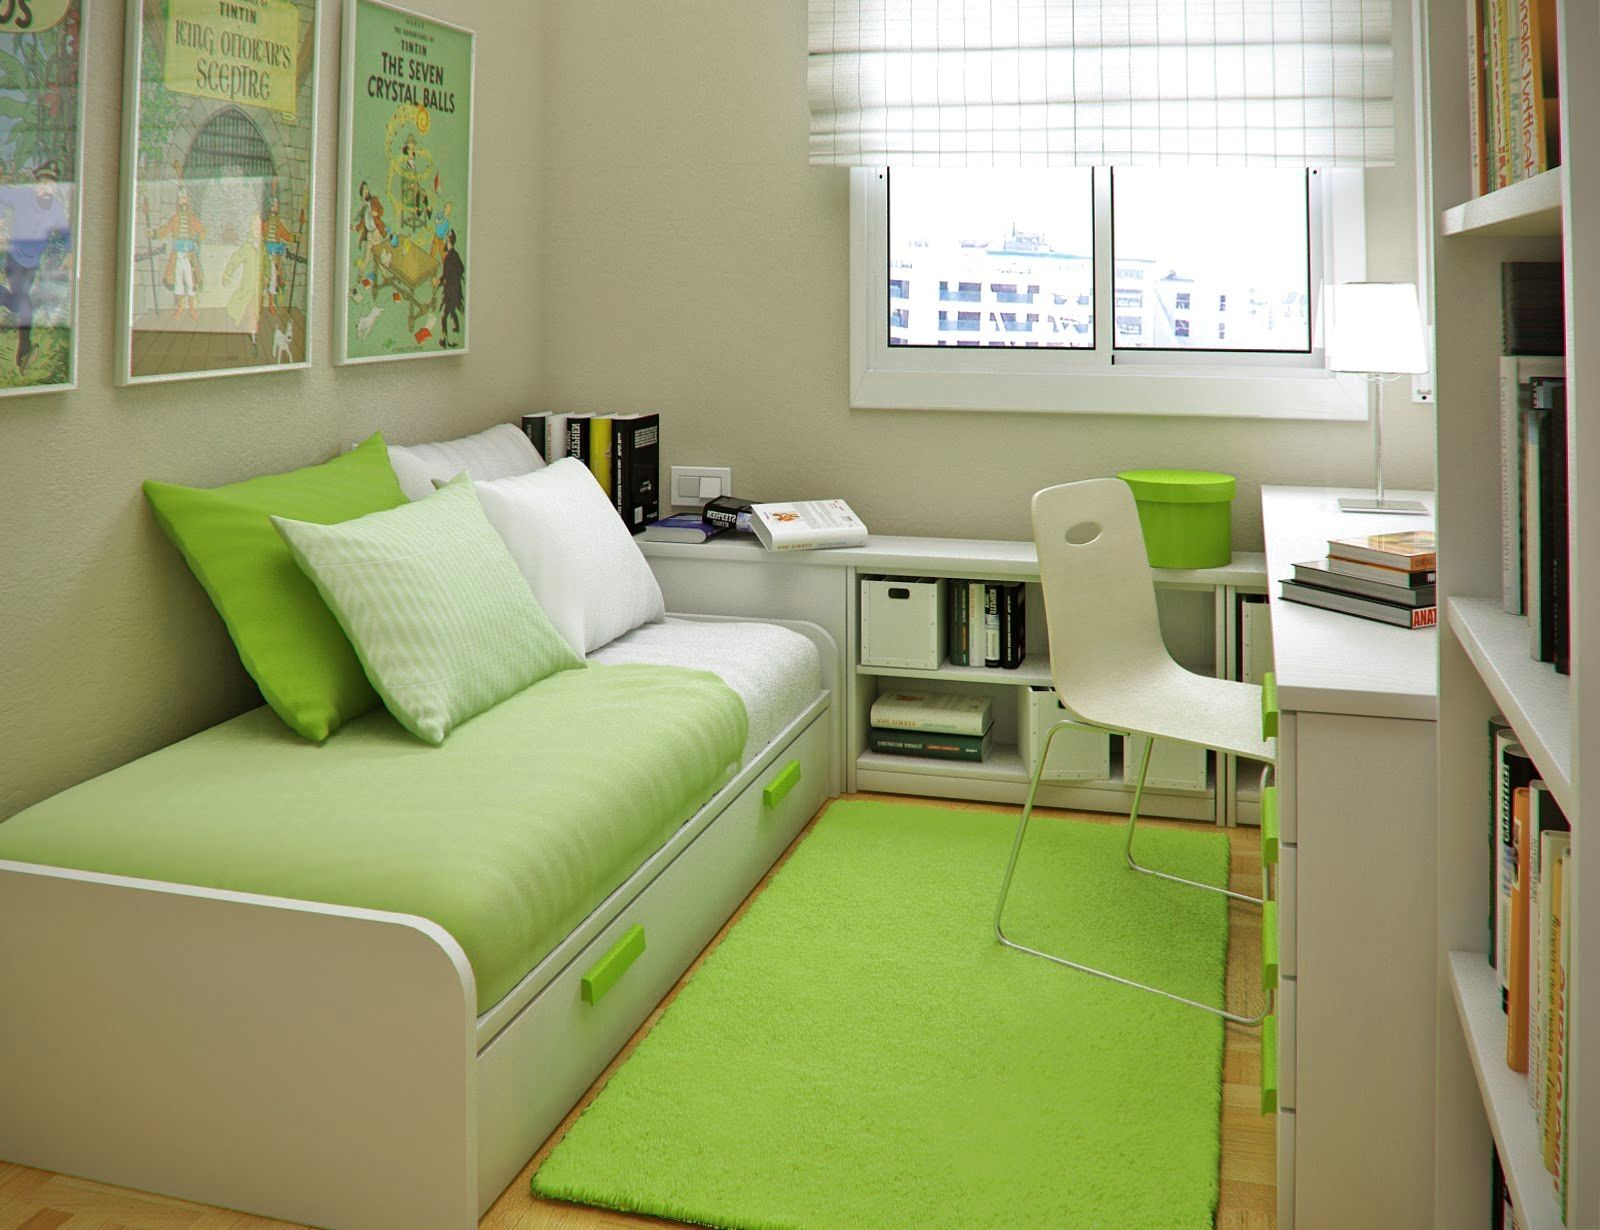 Simple Bedroom Design For Small Space New Simple Small Bedroom Interior Design  Small Bedroom  Pinterest Inspiration Design